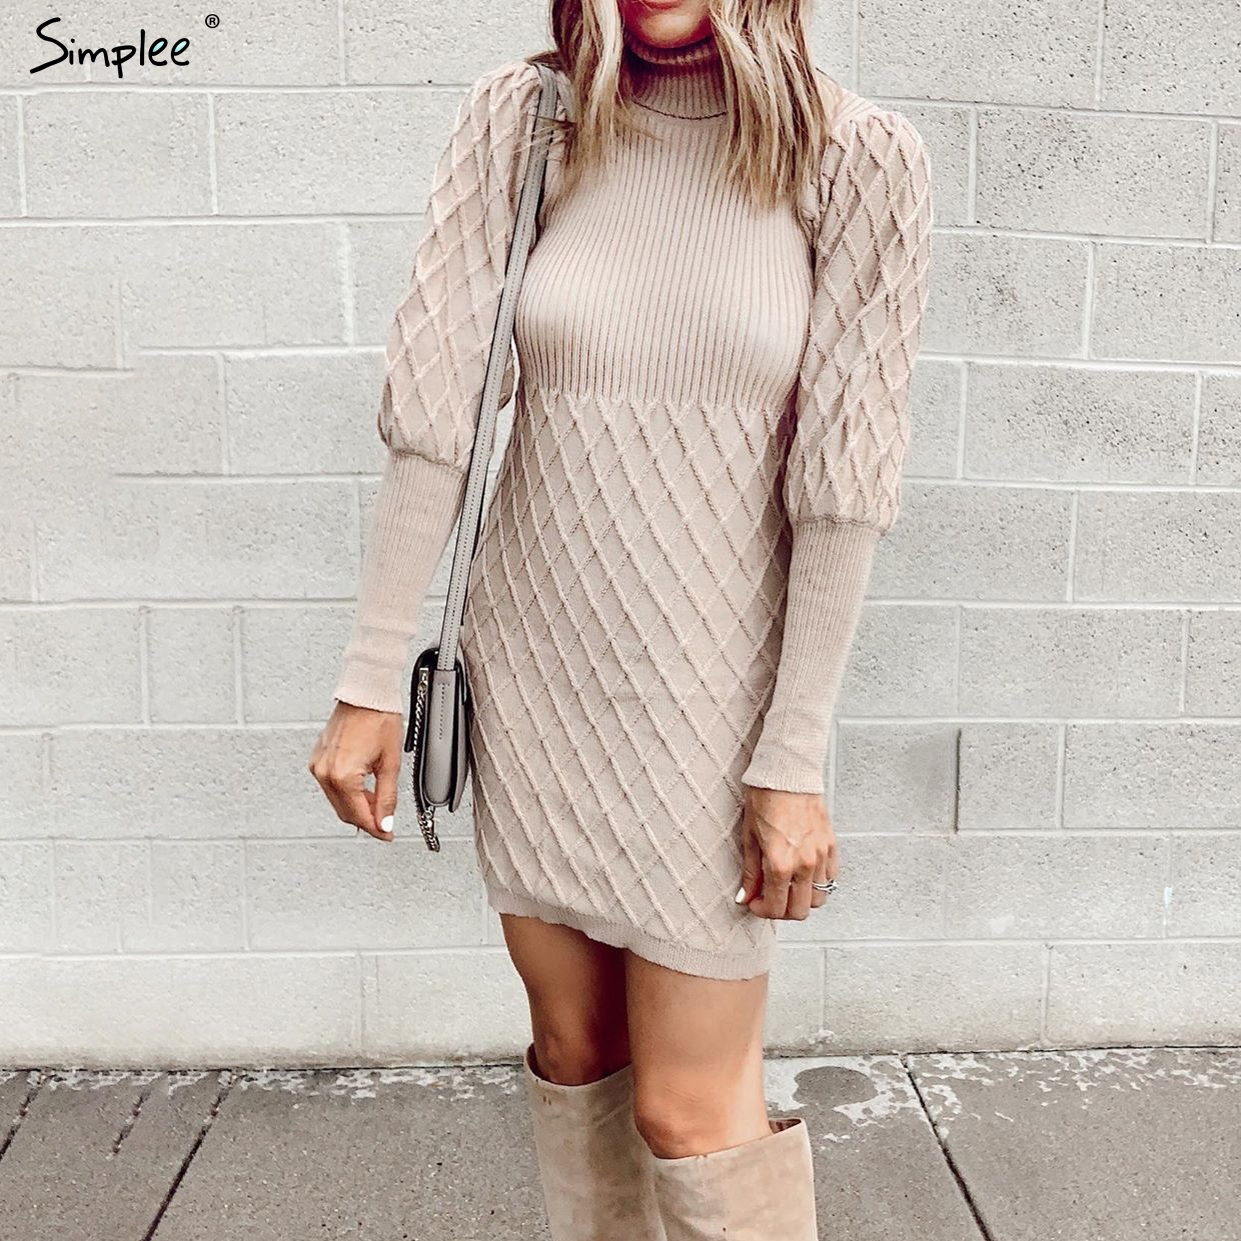 Simplee Turtleneck Long Cable Knitted Women Pullover Sweater Dress Vintage Autumn Winter Lantern Sleeve Female Outwear Dresses